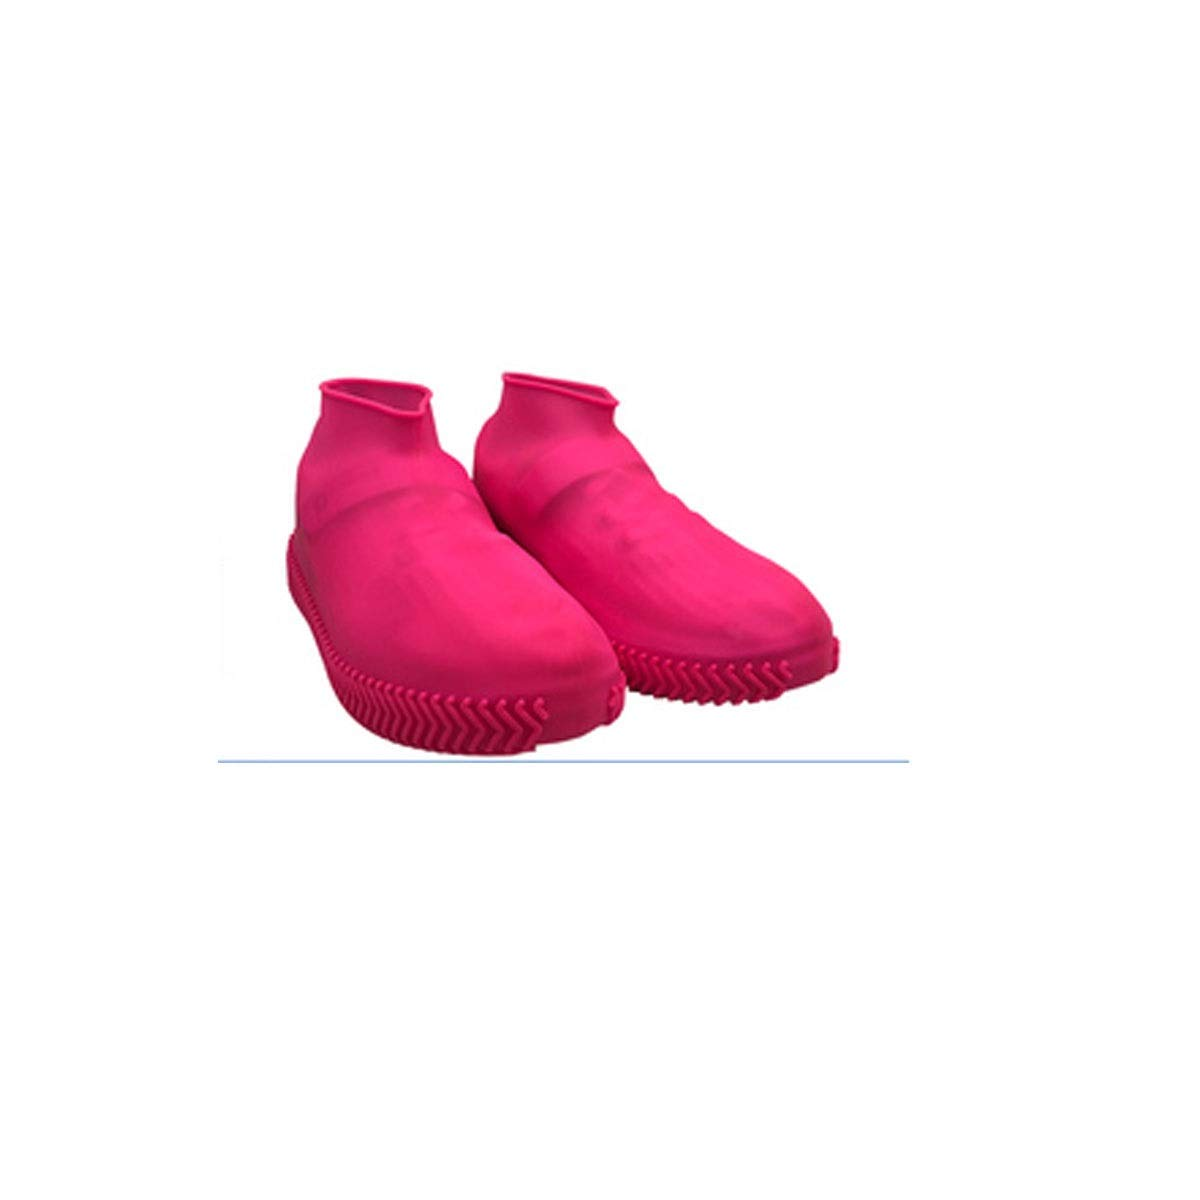 WUHUIZHENJINGXIAOBU Waterproof Shoe Cover, rain-Proof Water-Like Rubber wear-Resistant Shoe Bag, Free to Choose from a Variety of Colors Shoe Covers That can be Worn on Rainy Days, (Color : Pink-L)